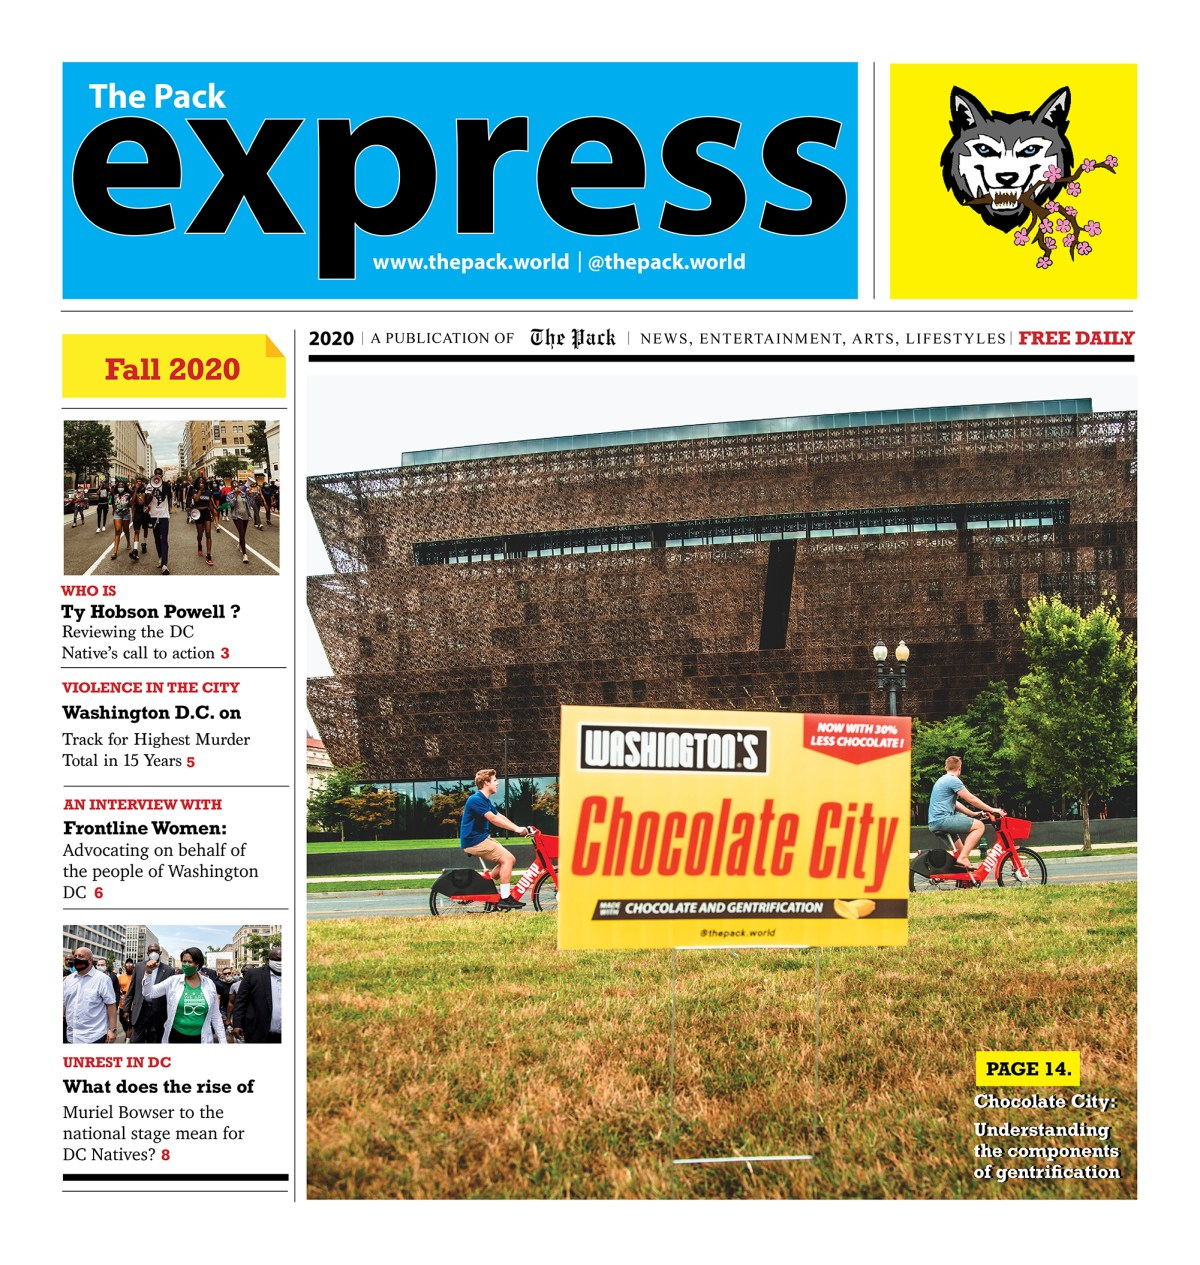 The cover of The Pack's Express.